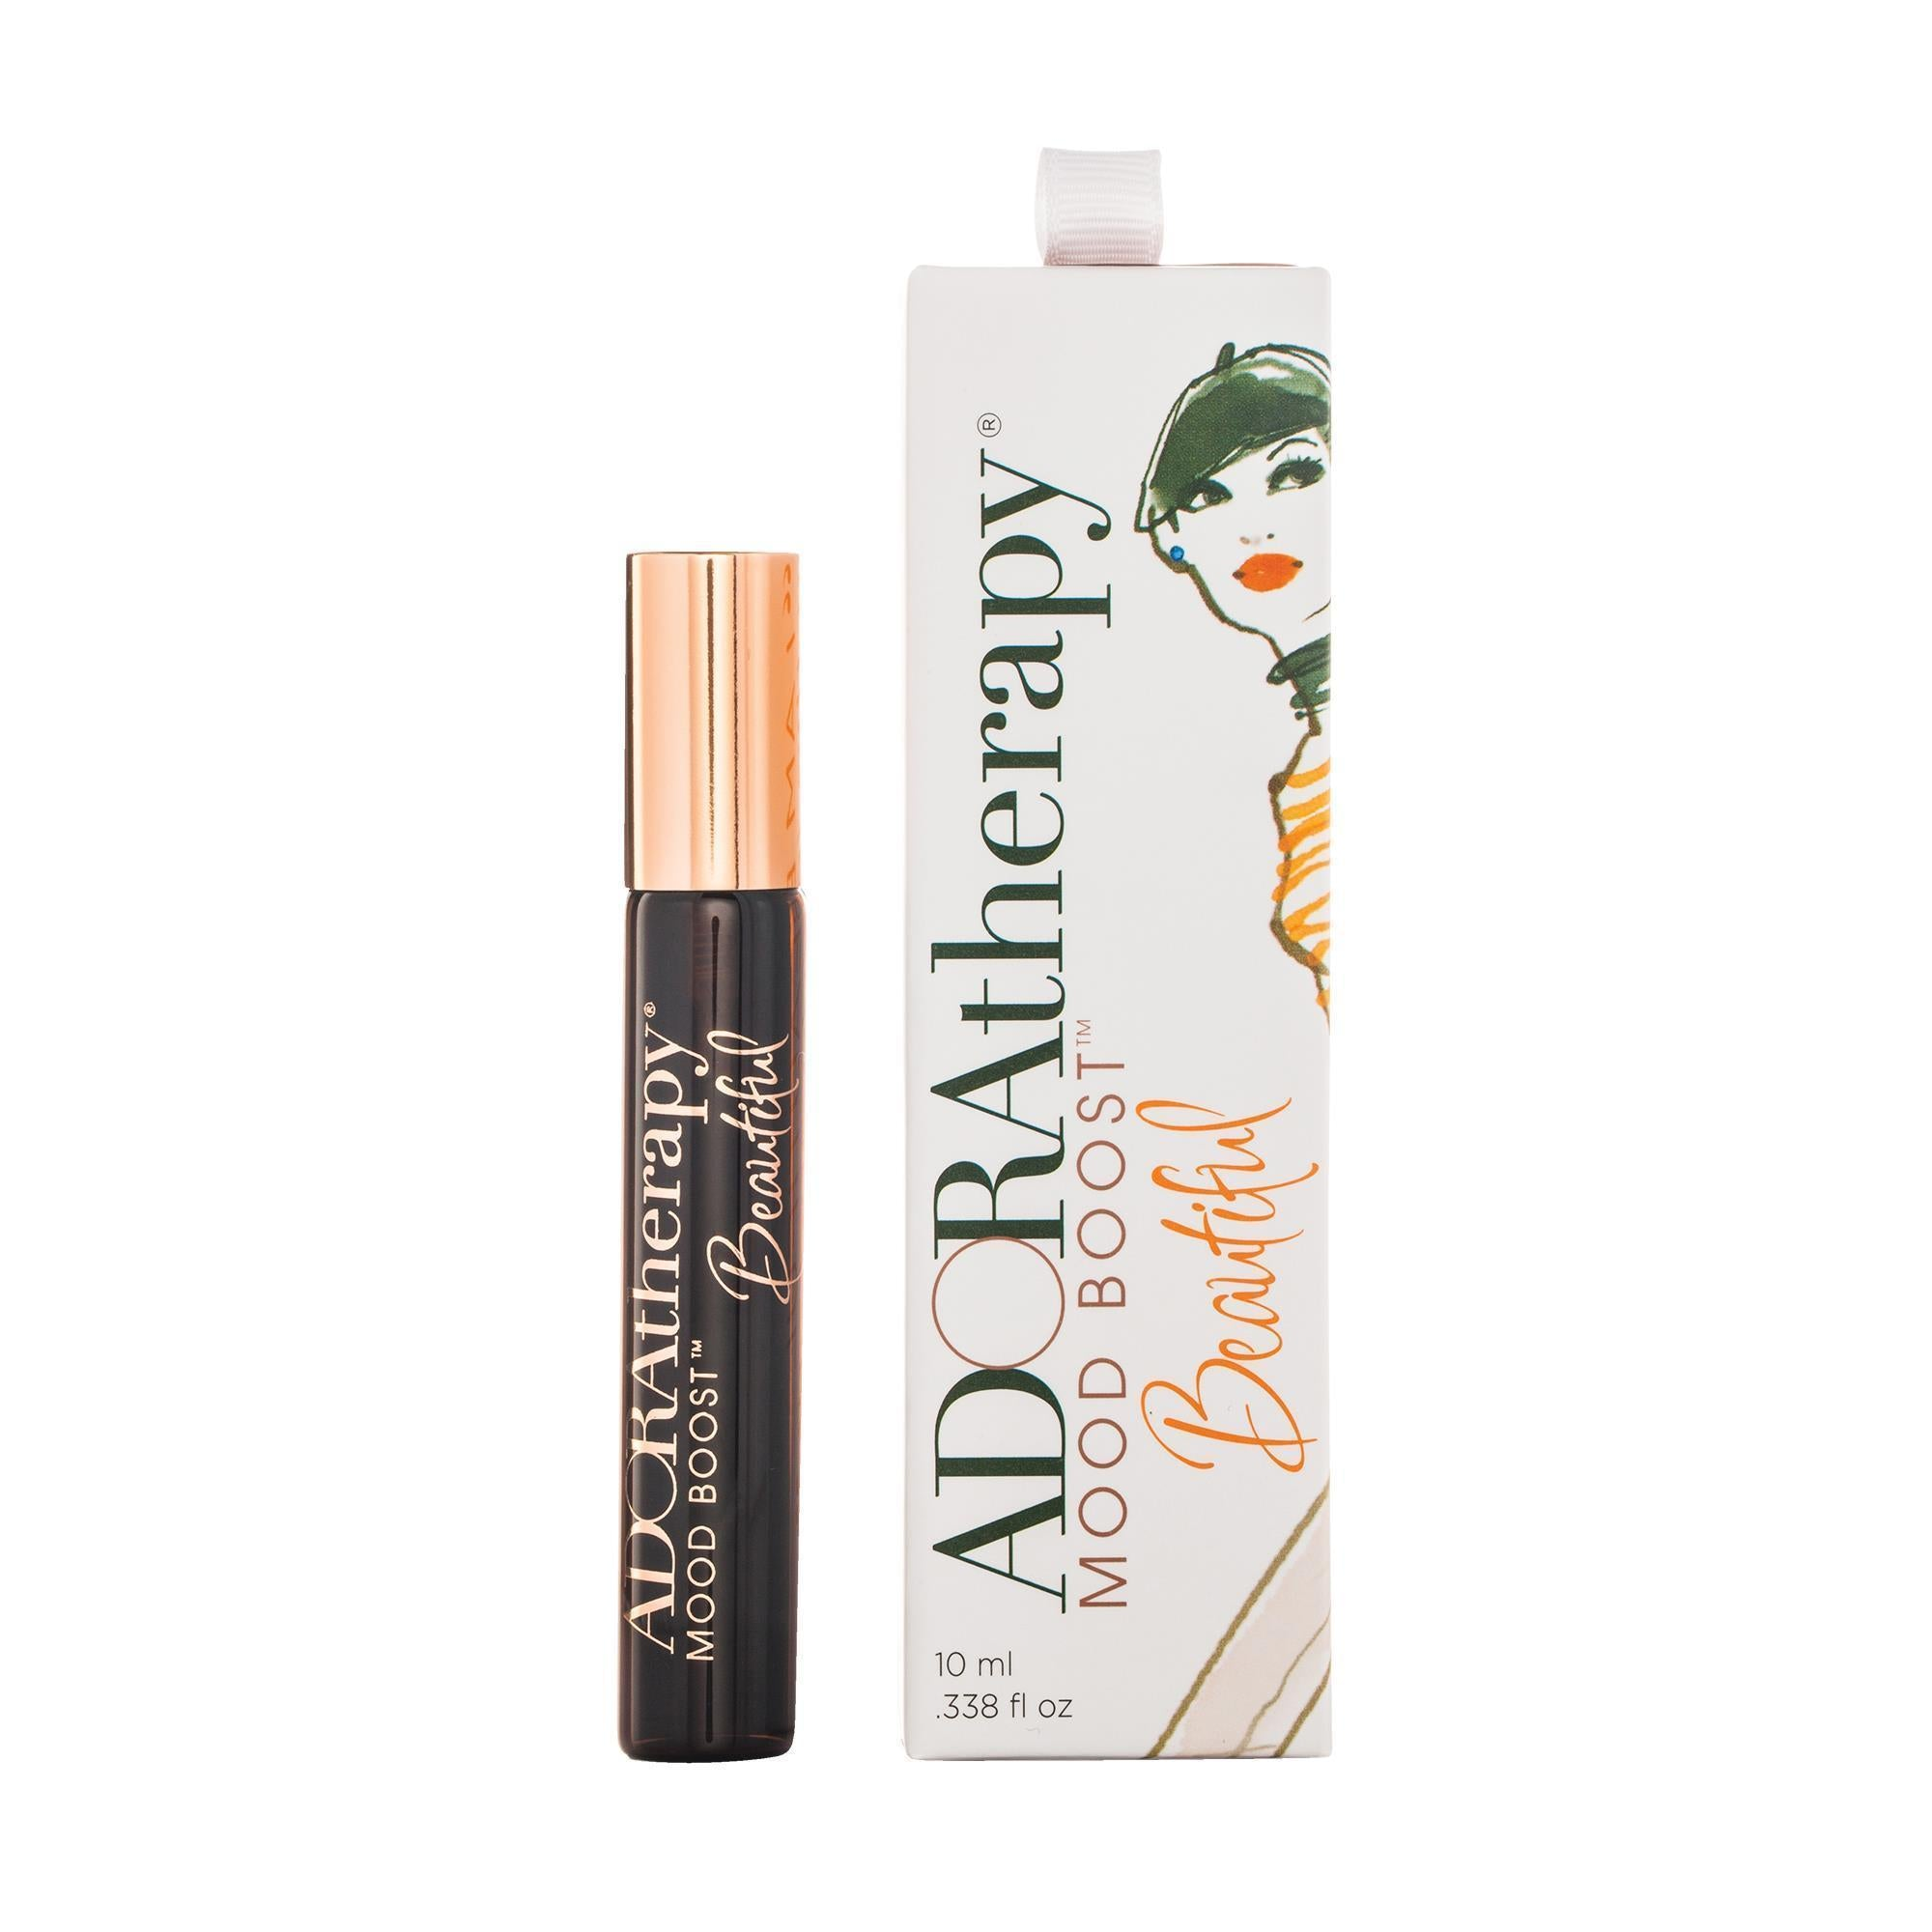 Fragrance 10 ml ADORAtherapy Beautiful Gal on the Go Mood Boost